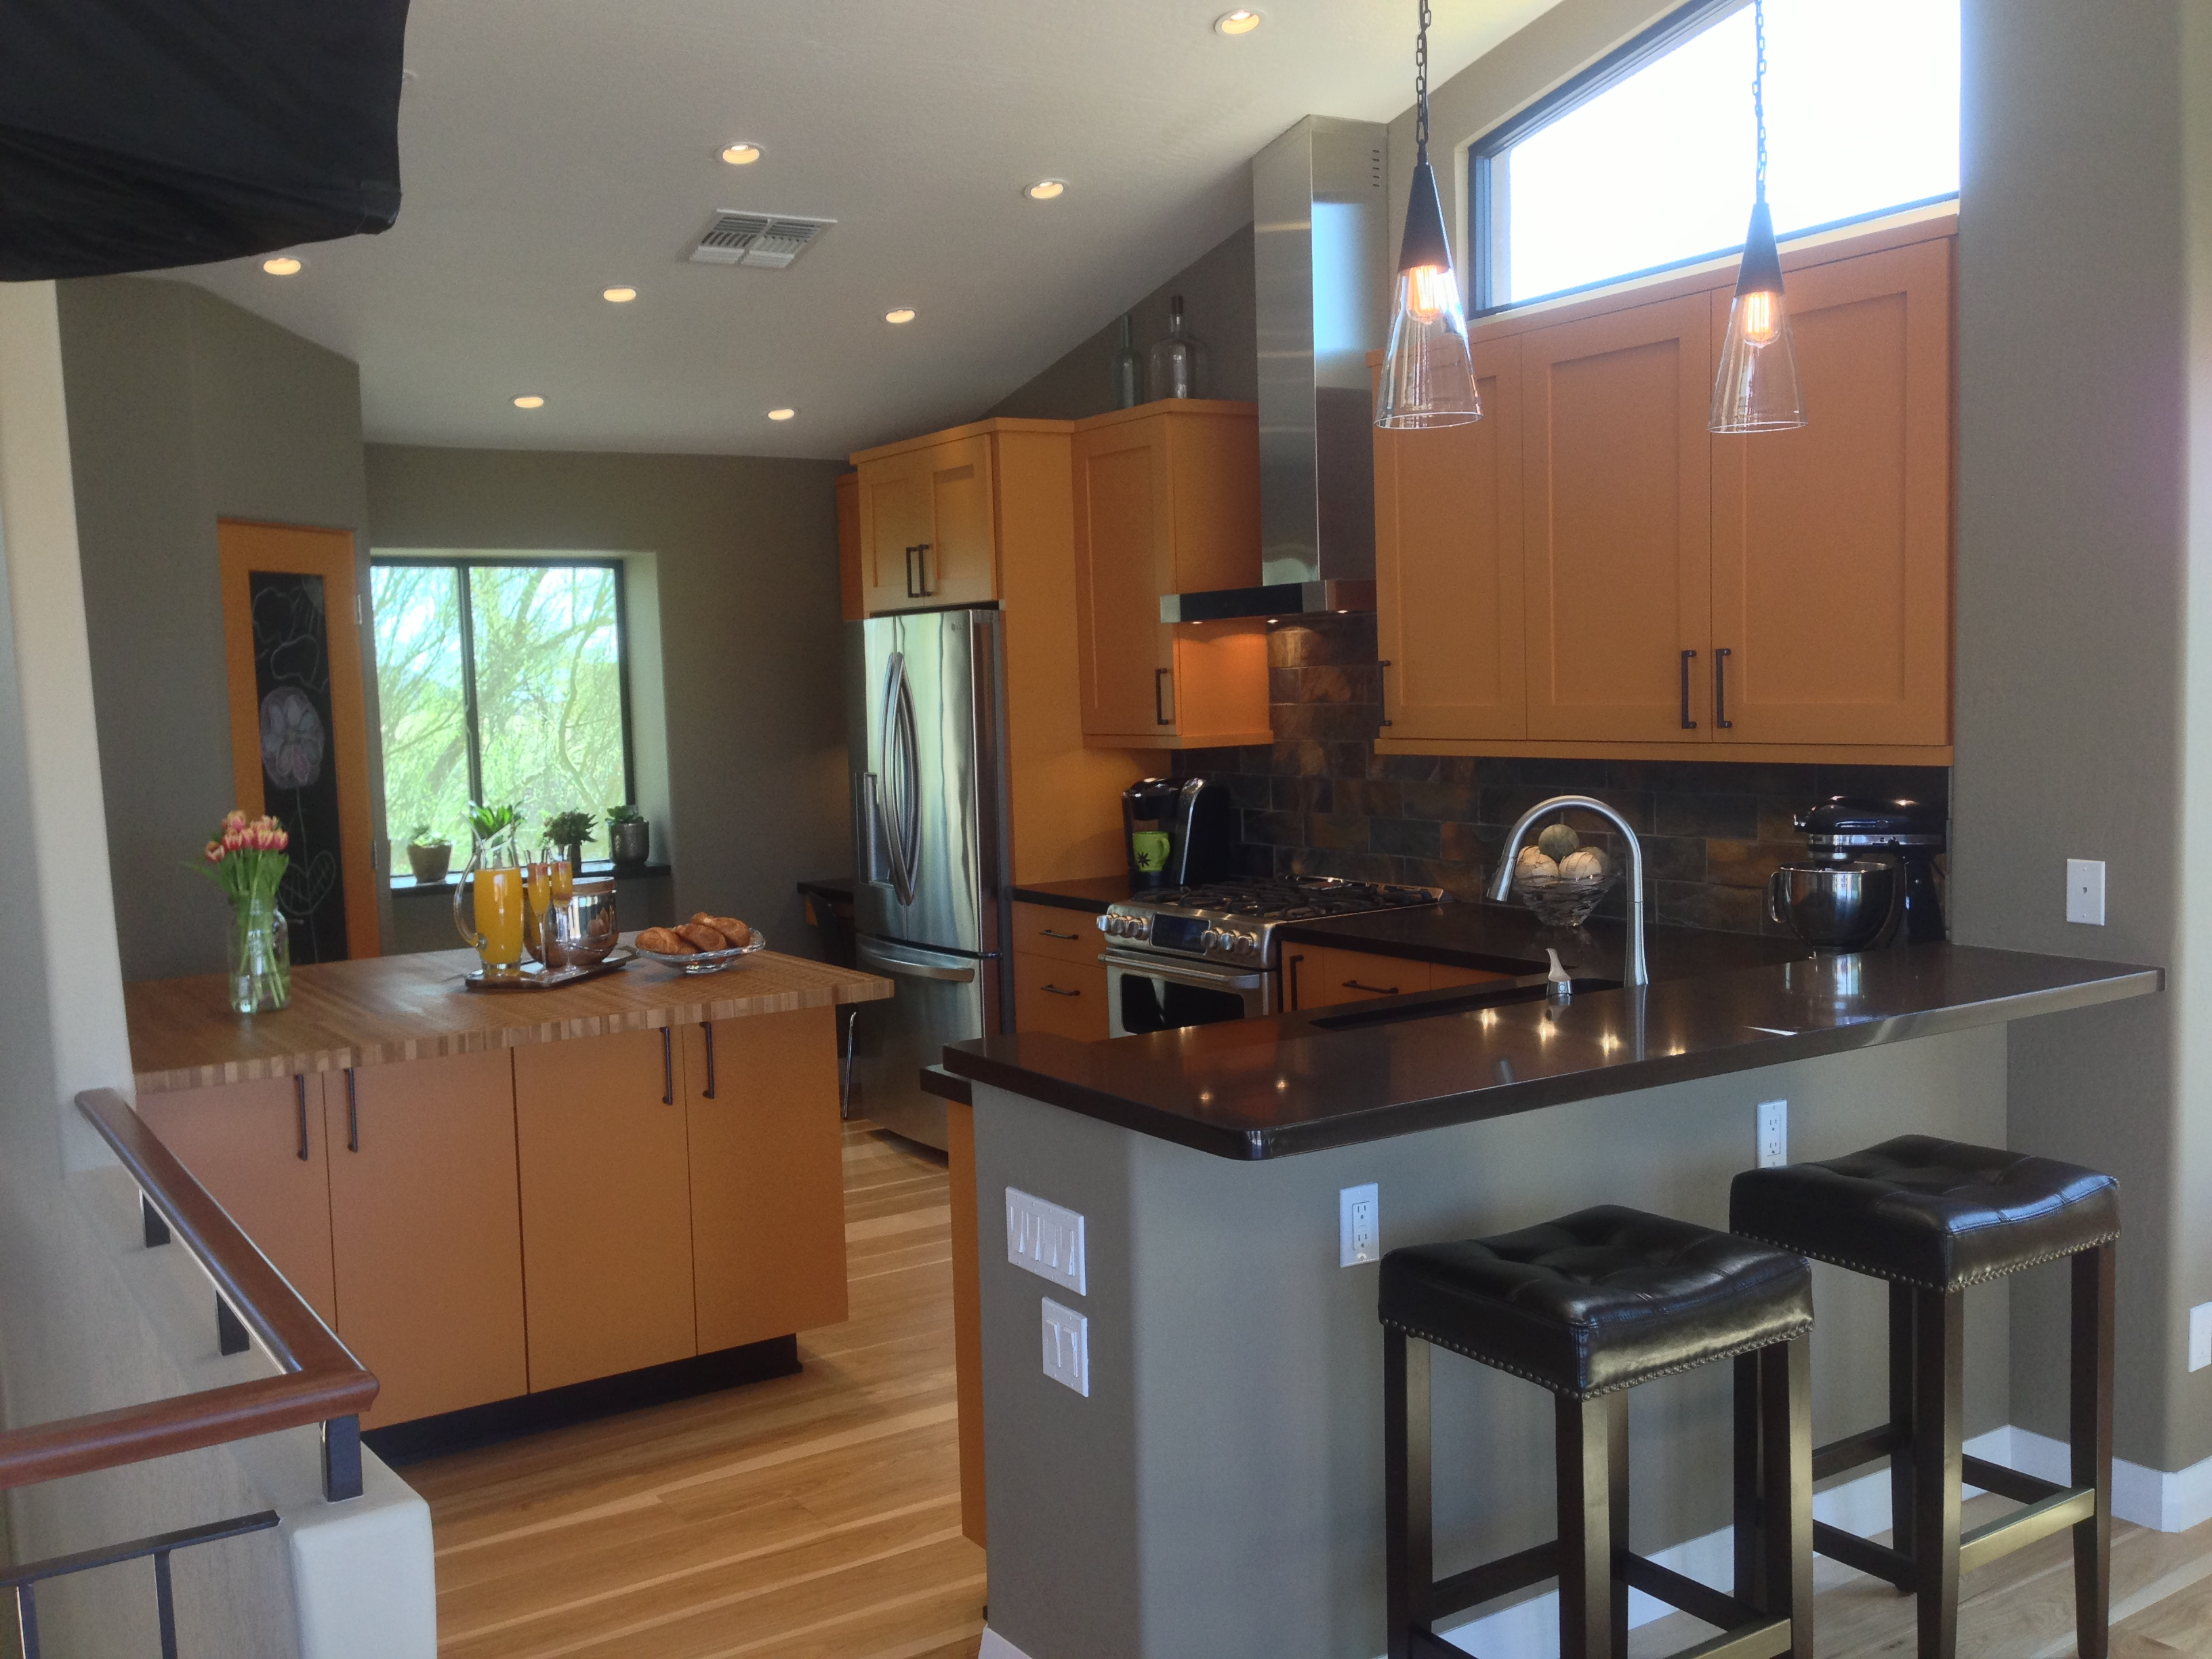 Cost To Remodel A Kitchen: Granite Countertops For Kitchen Remodeling In Scottsdale